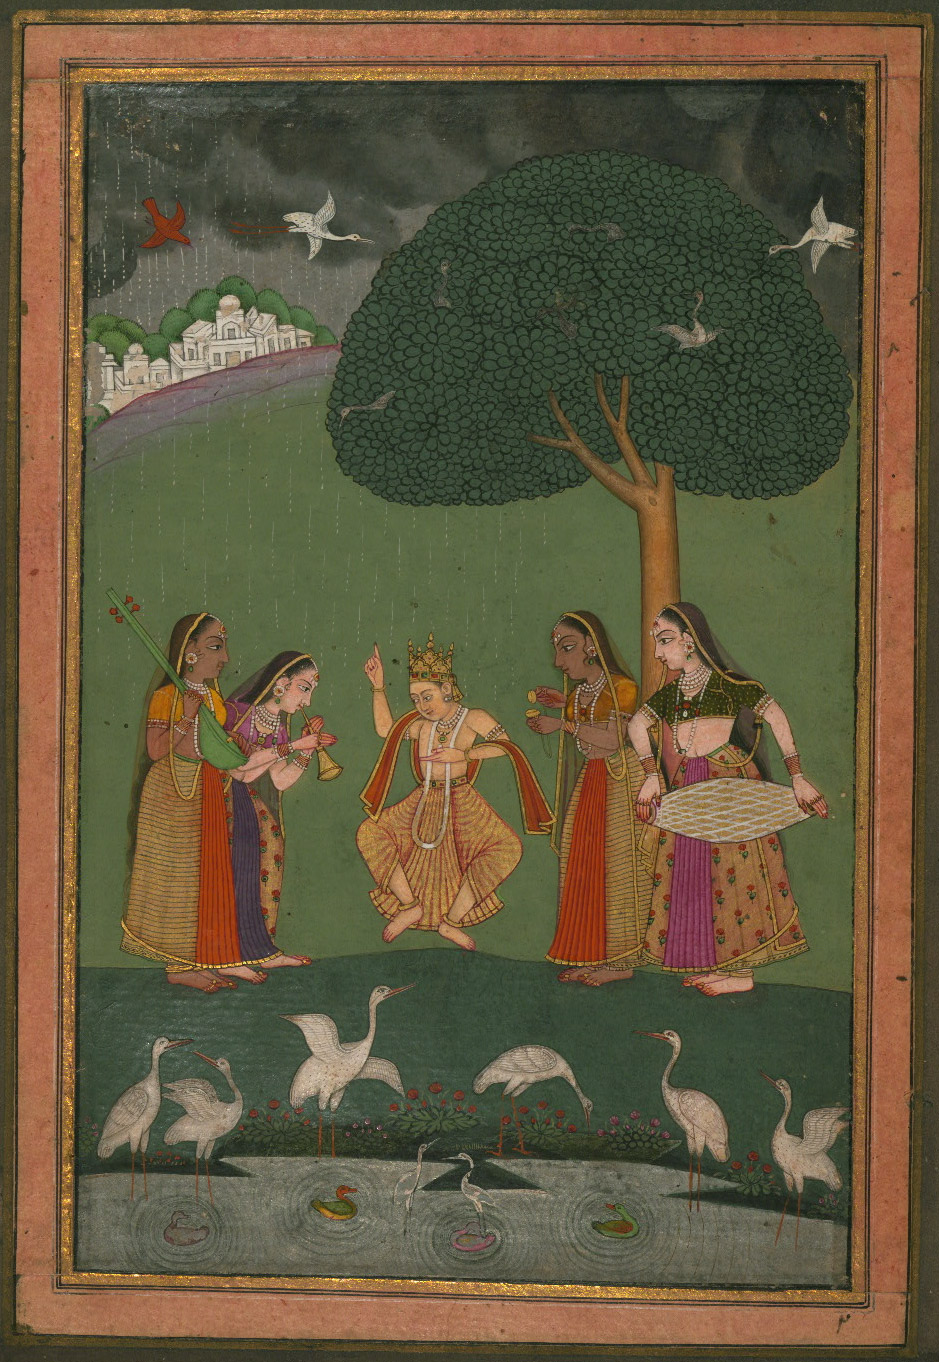 Megha Raga  - Miniature Painting, Ragamala series, 19th Century